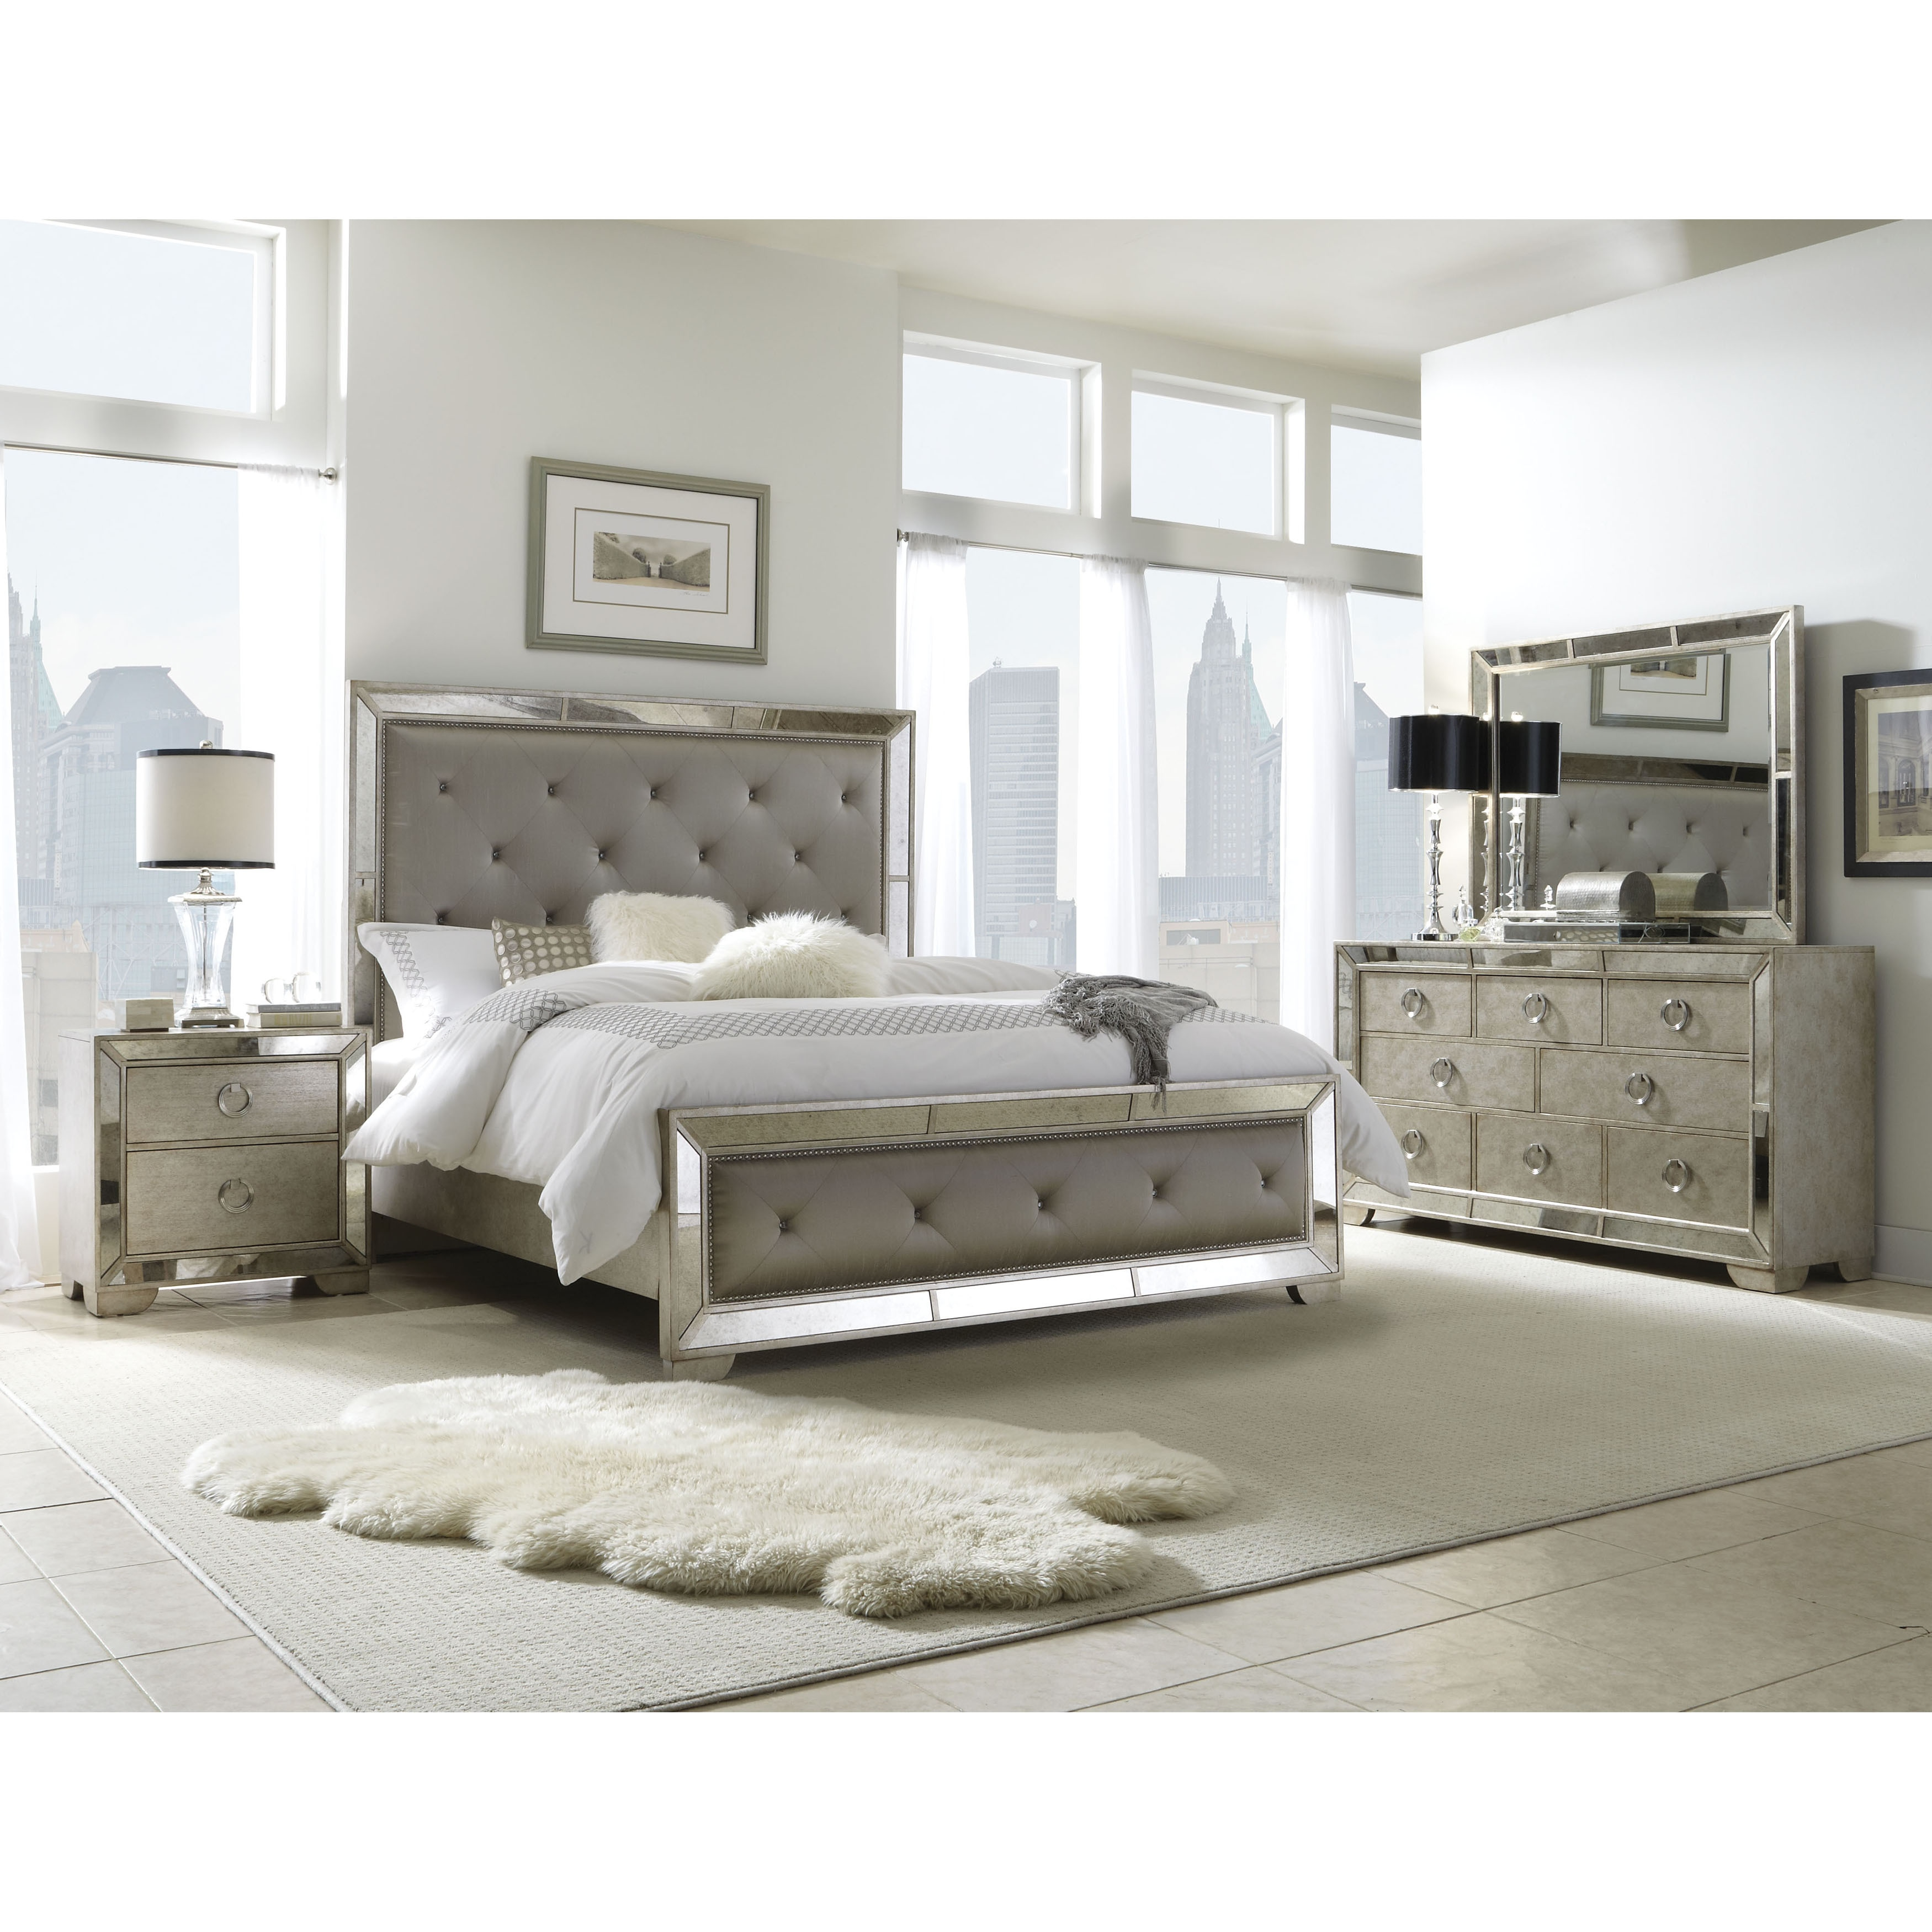 Beautiful Upholstered King Bedroom Set Decorating Ideas